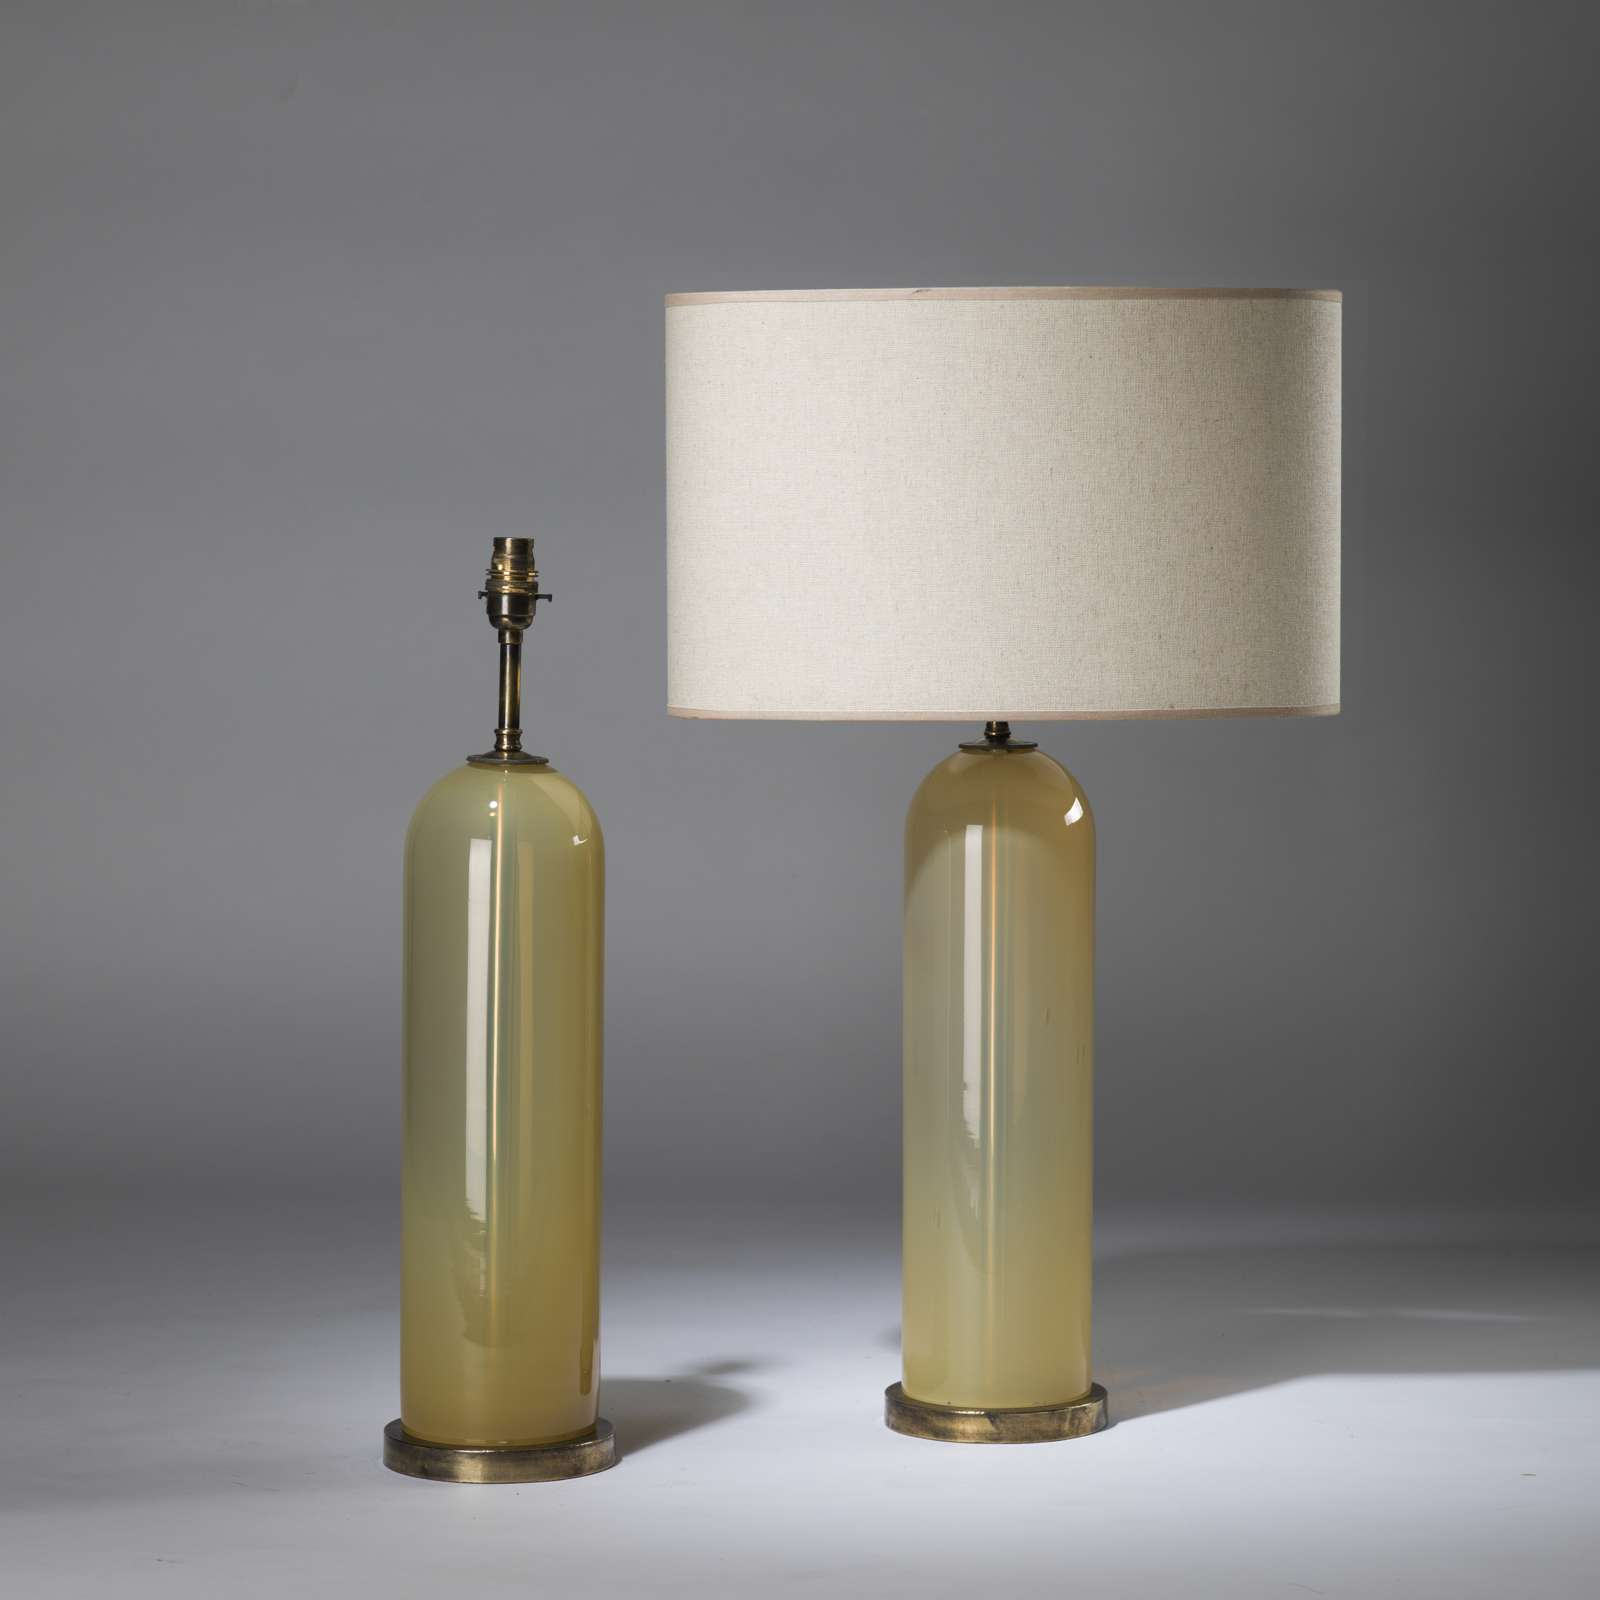 plafond century s yellow archive ztijl b ceiling lamps of lamp amber mid raak glass with design vintage set shade